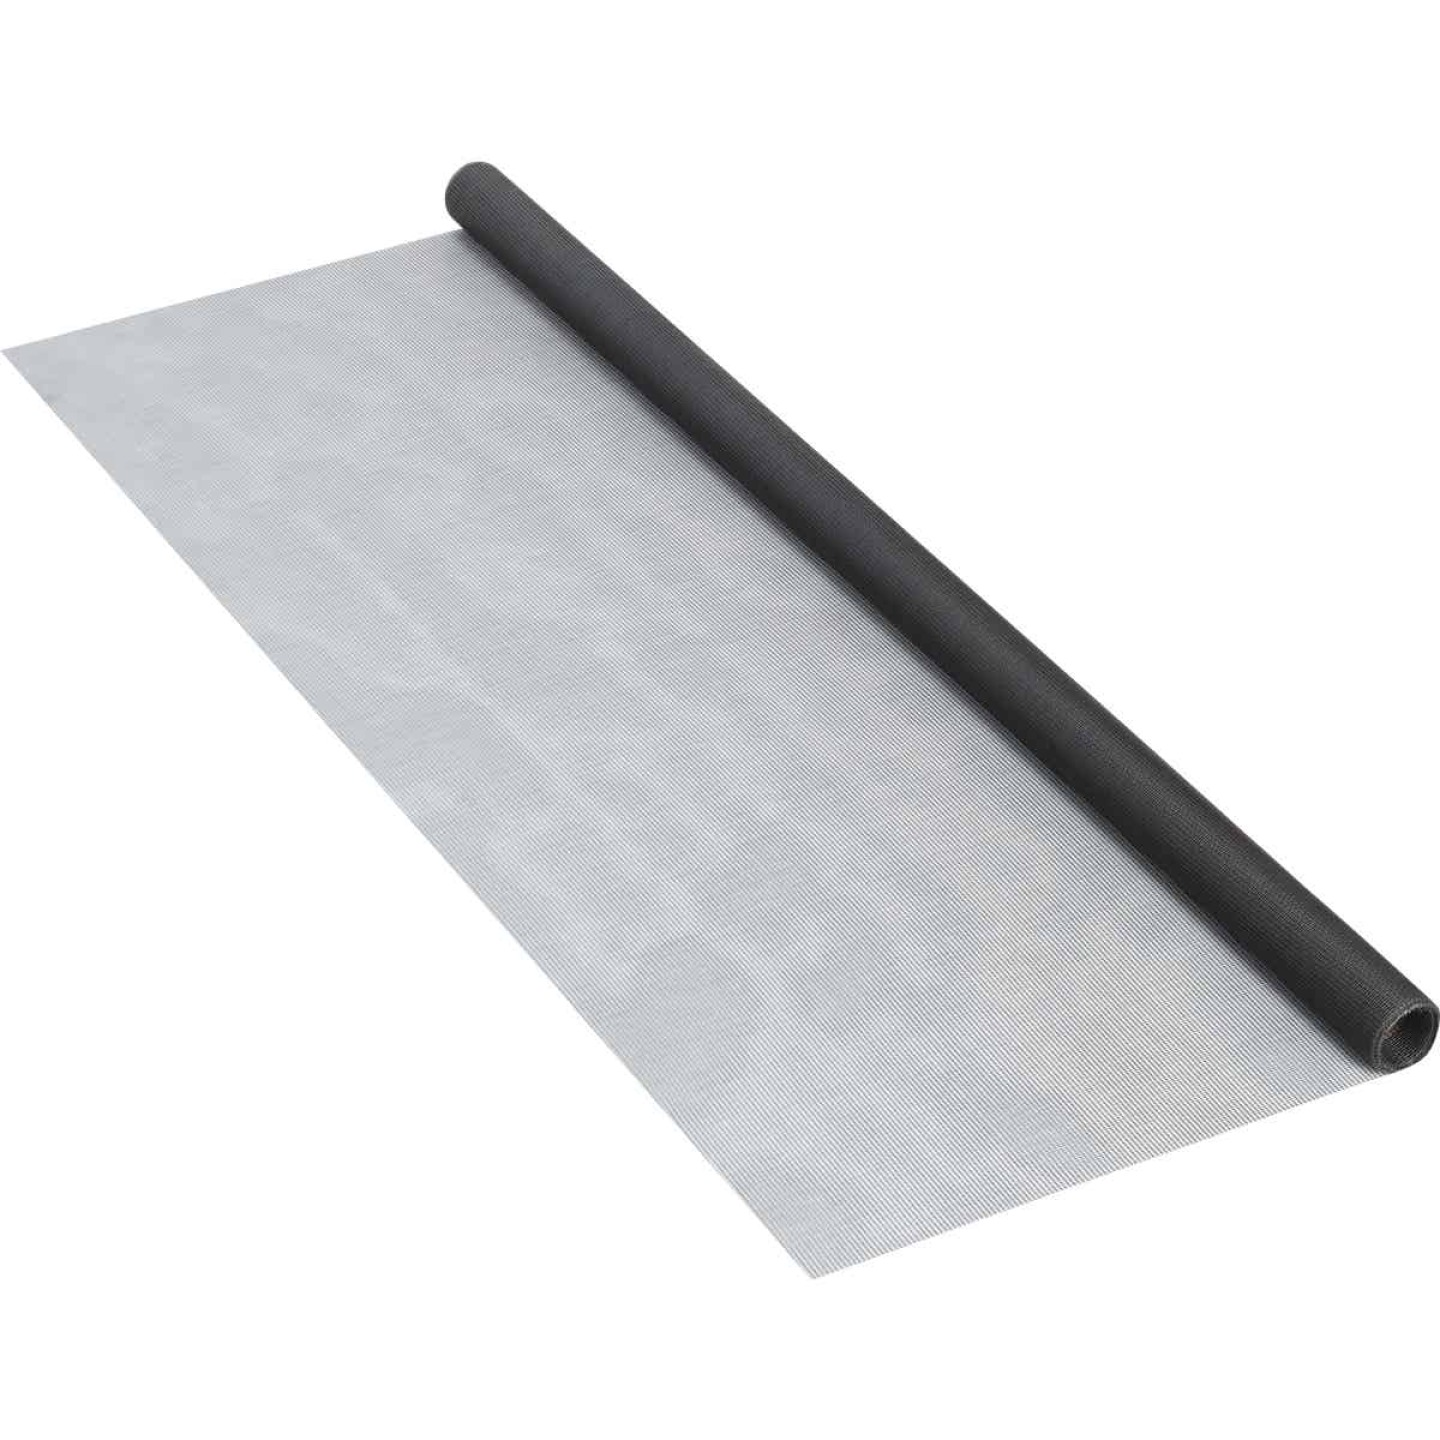 Phifer 48 In. x 84 In. Charcoal Fiberglass Screen Cloth Ready Rolls Image 3